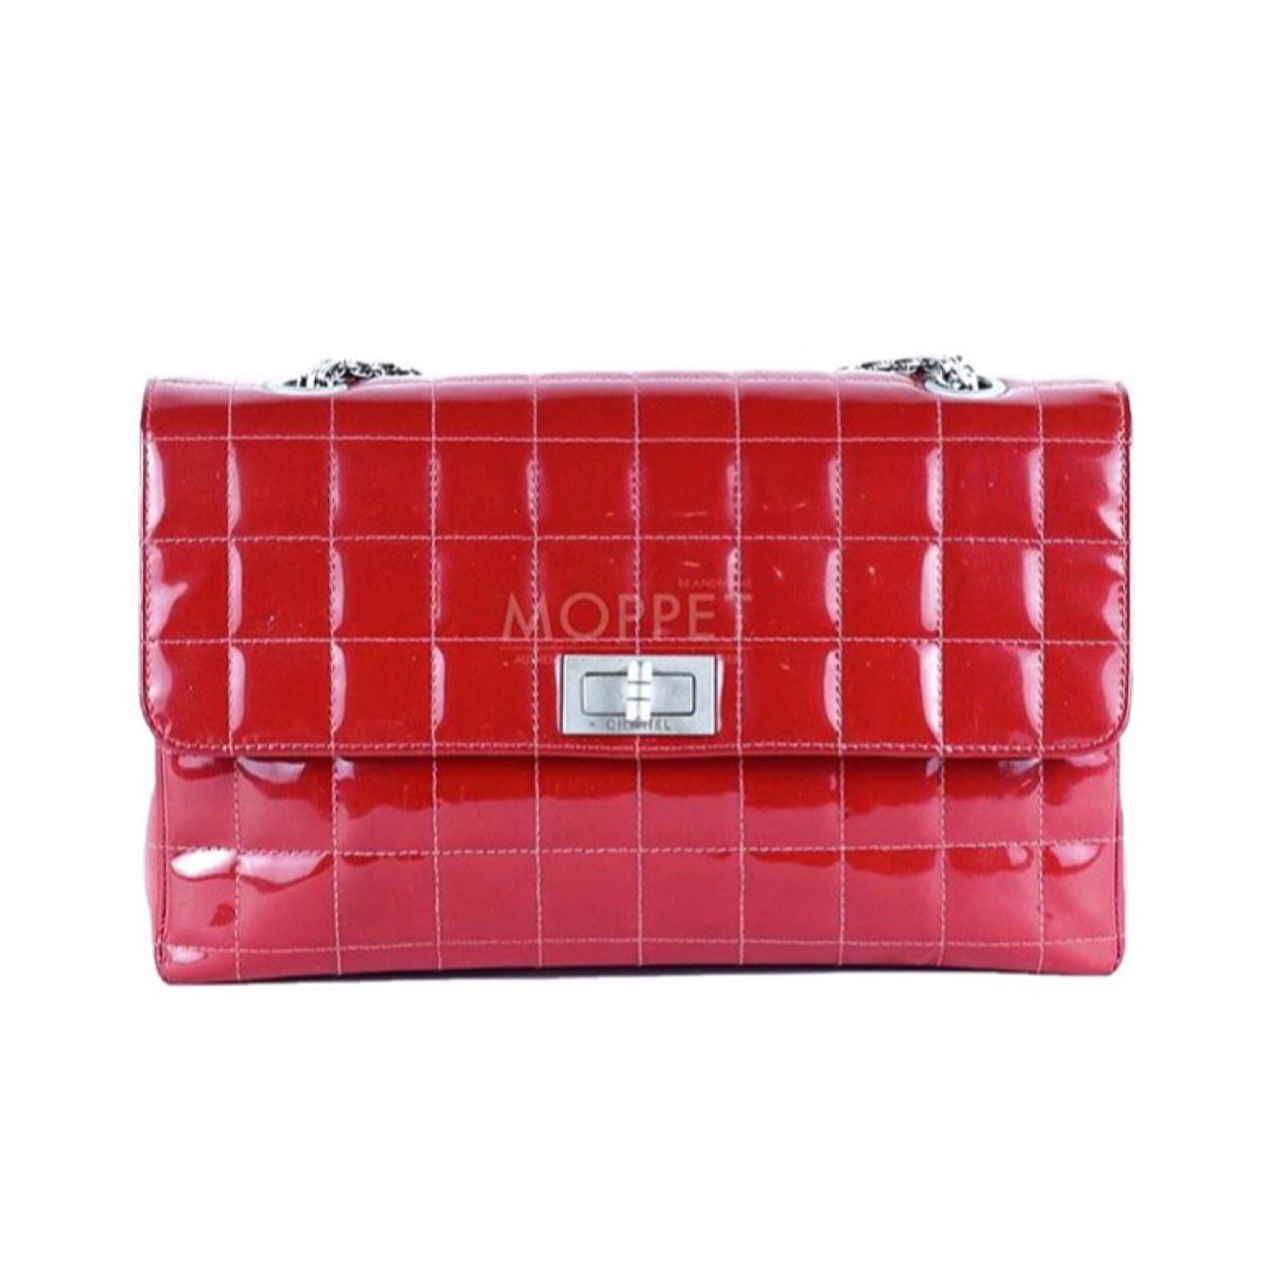 Used Chanel Reissue 226 in Red Patent RHW